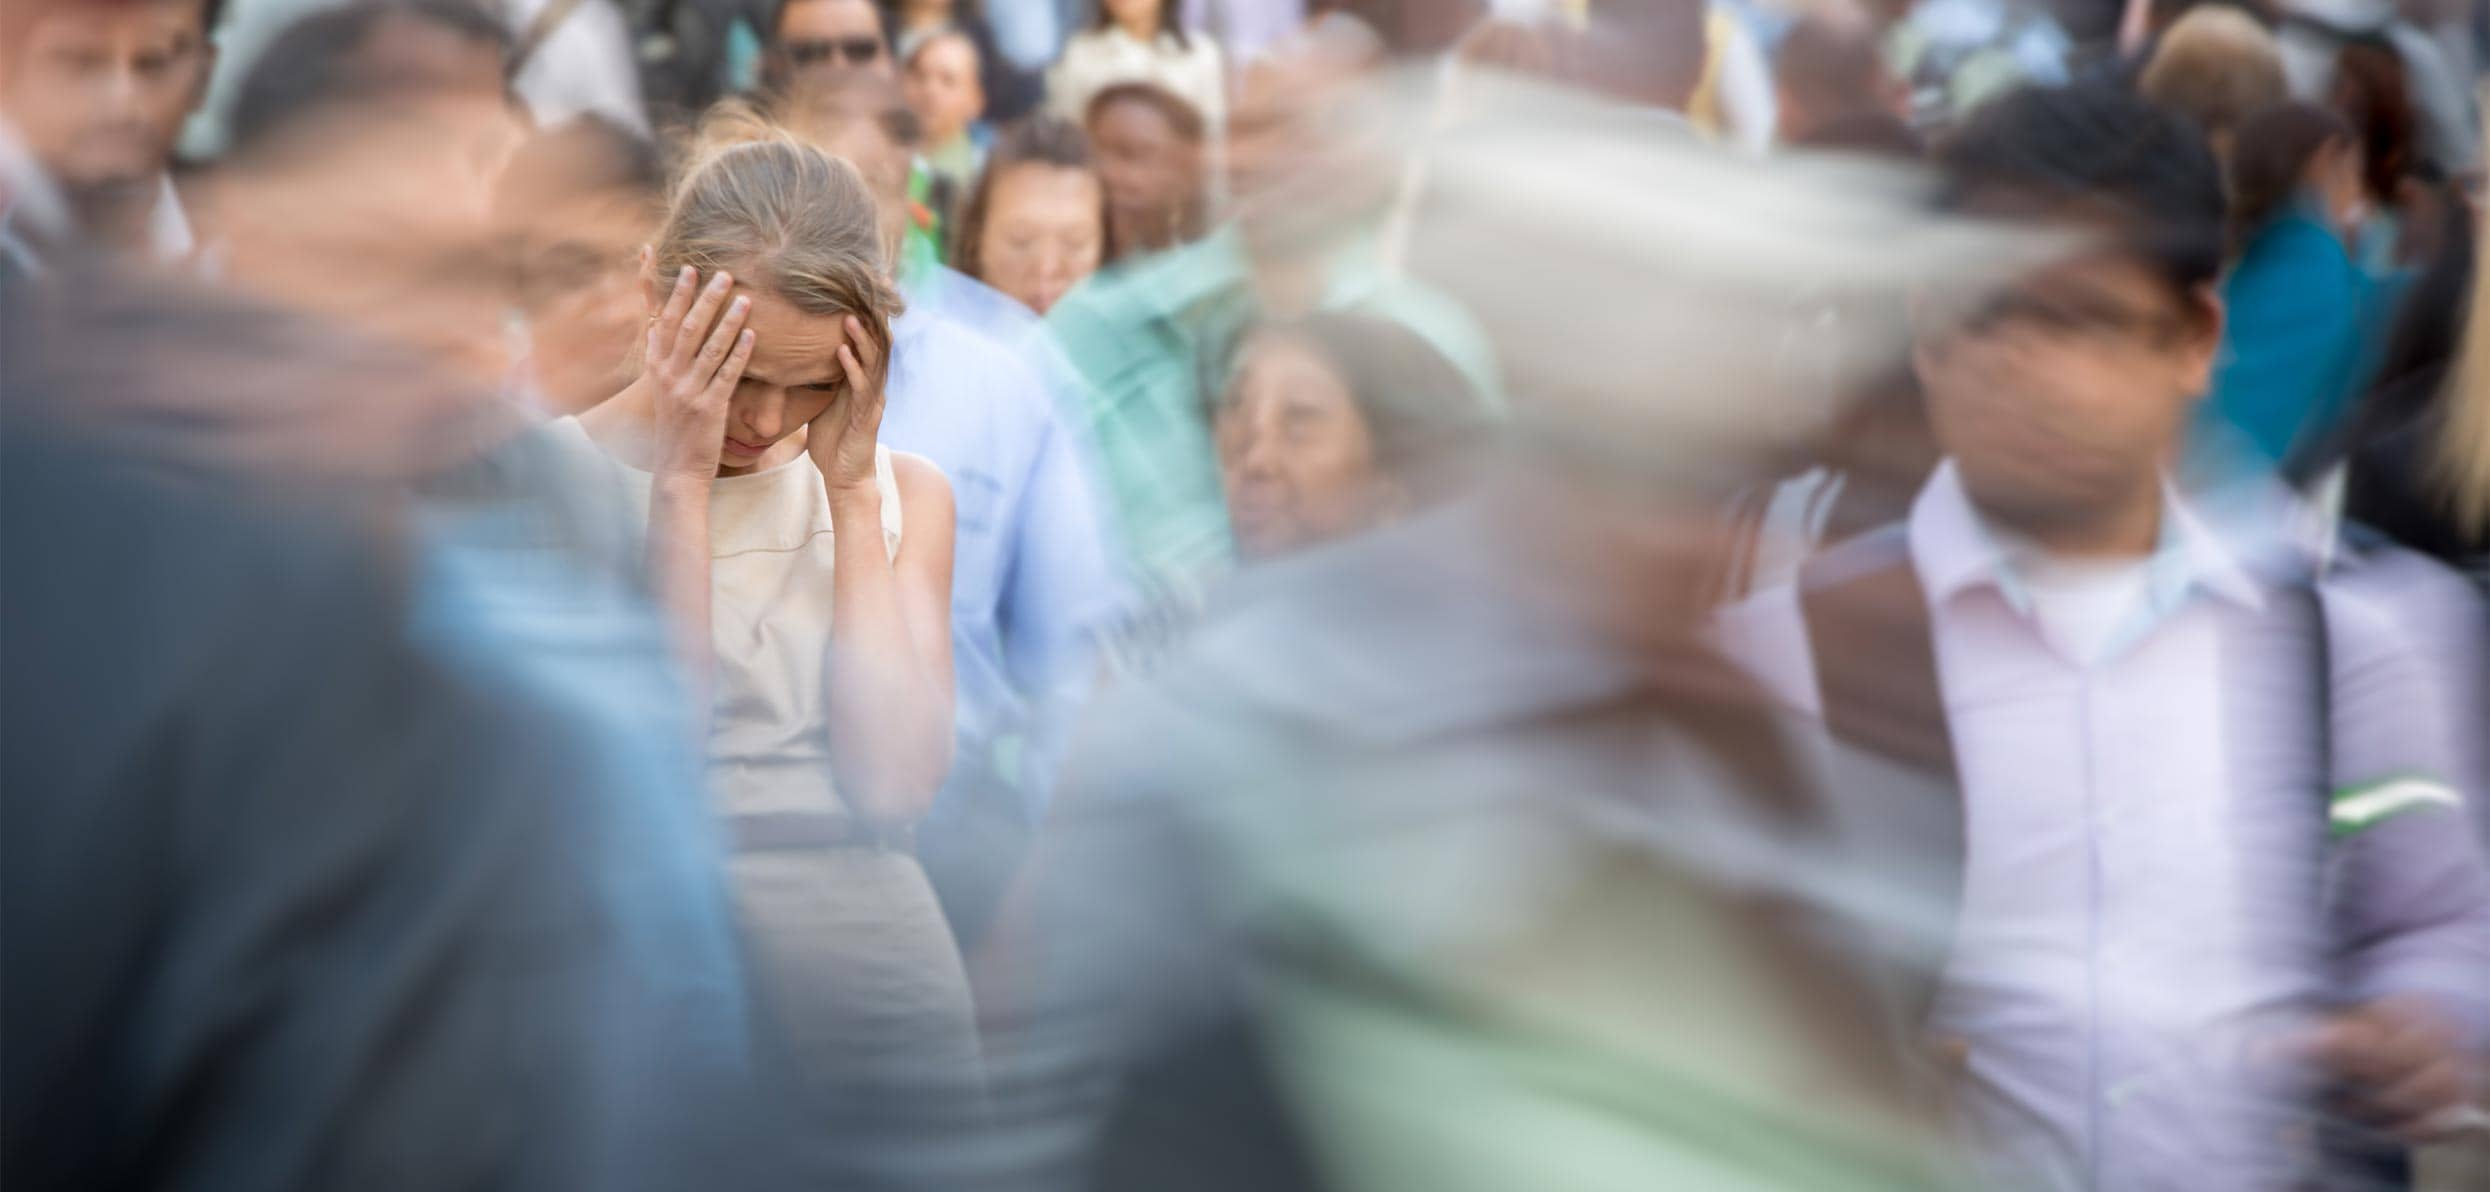 woman suffering from headache in a crowded place - hormonal fluctuations